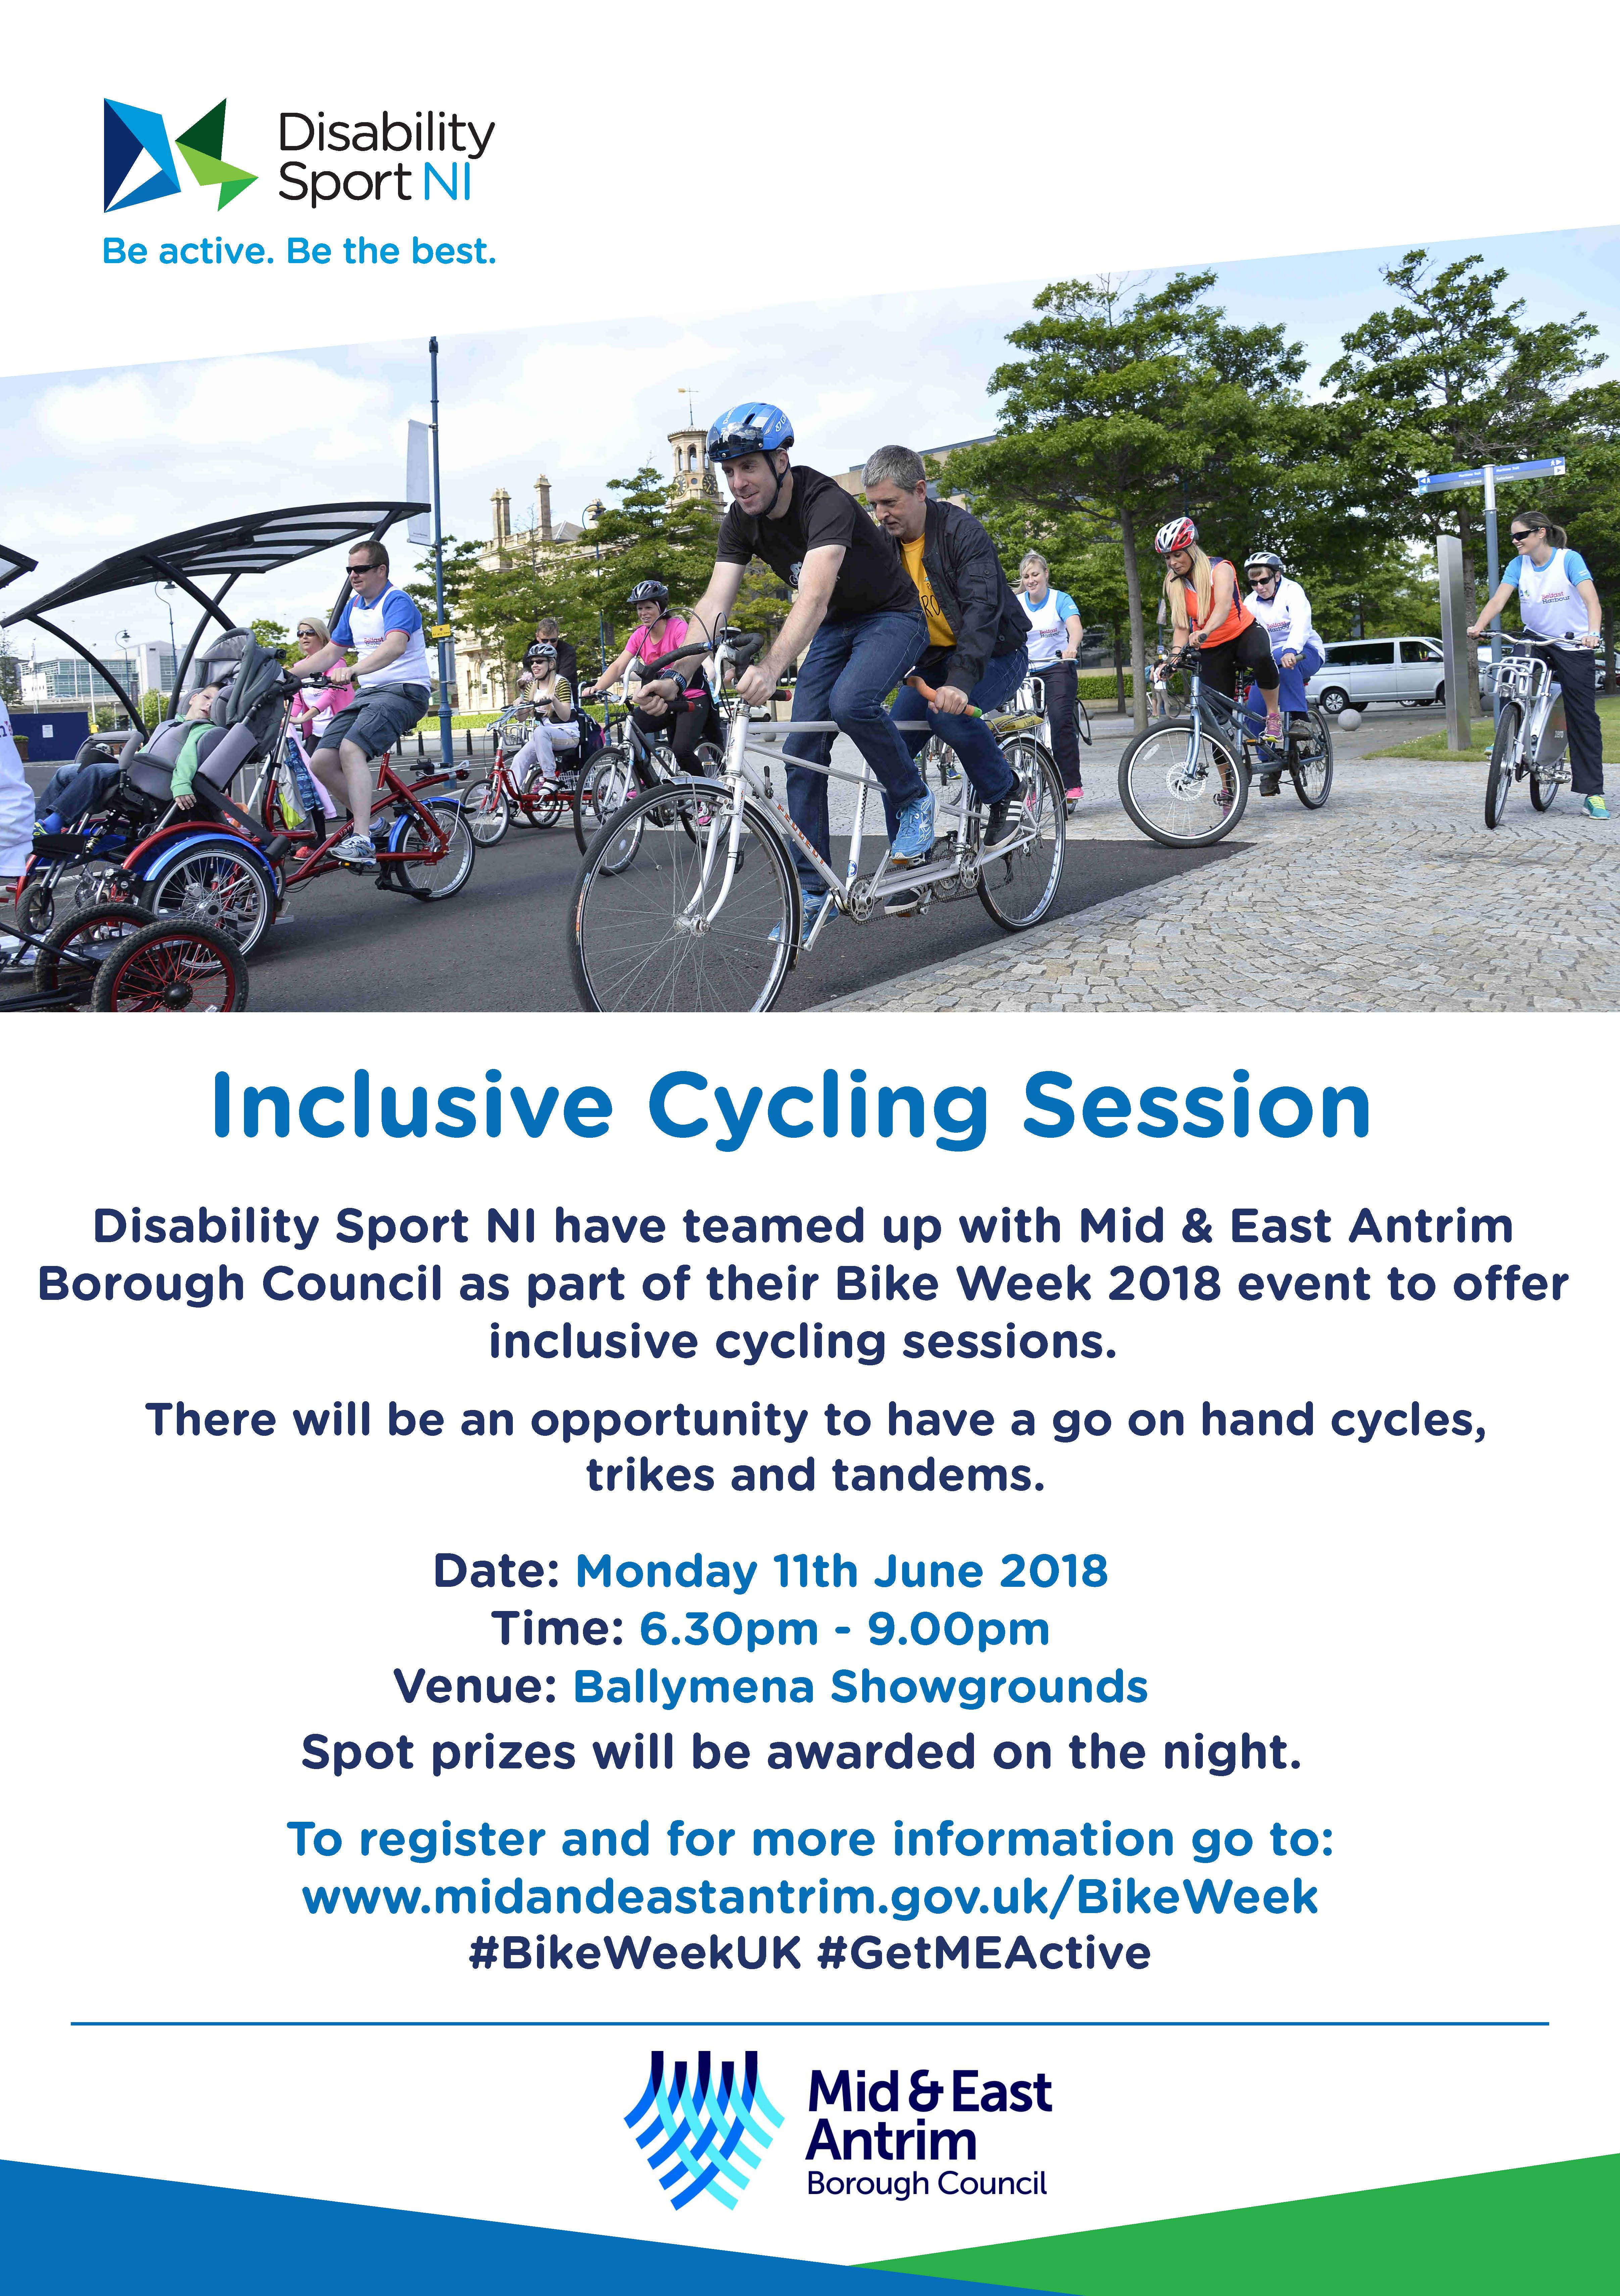 A flyer for the inclusive bike sessions. Information as per above in website body. The image on the flyer is of a group of people out using tandem cycles.